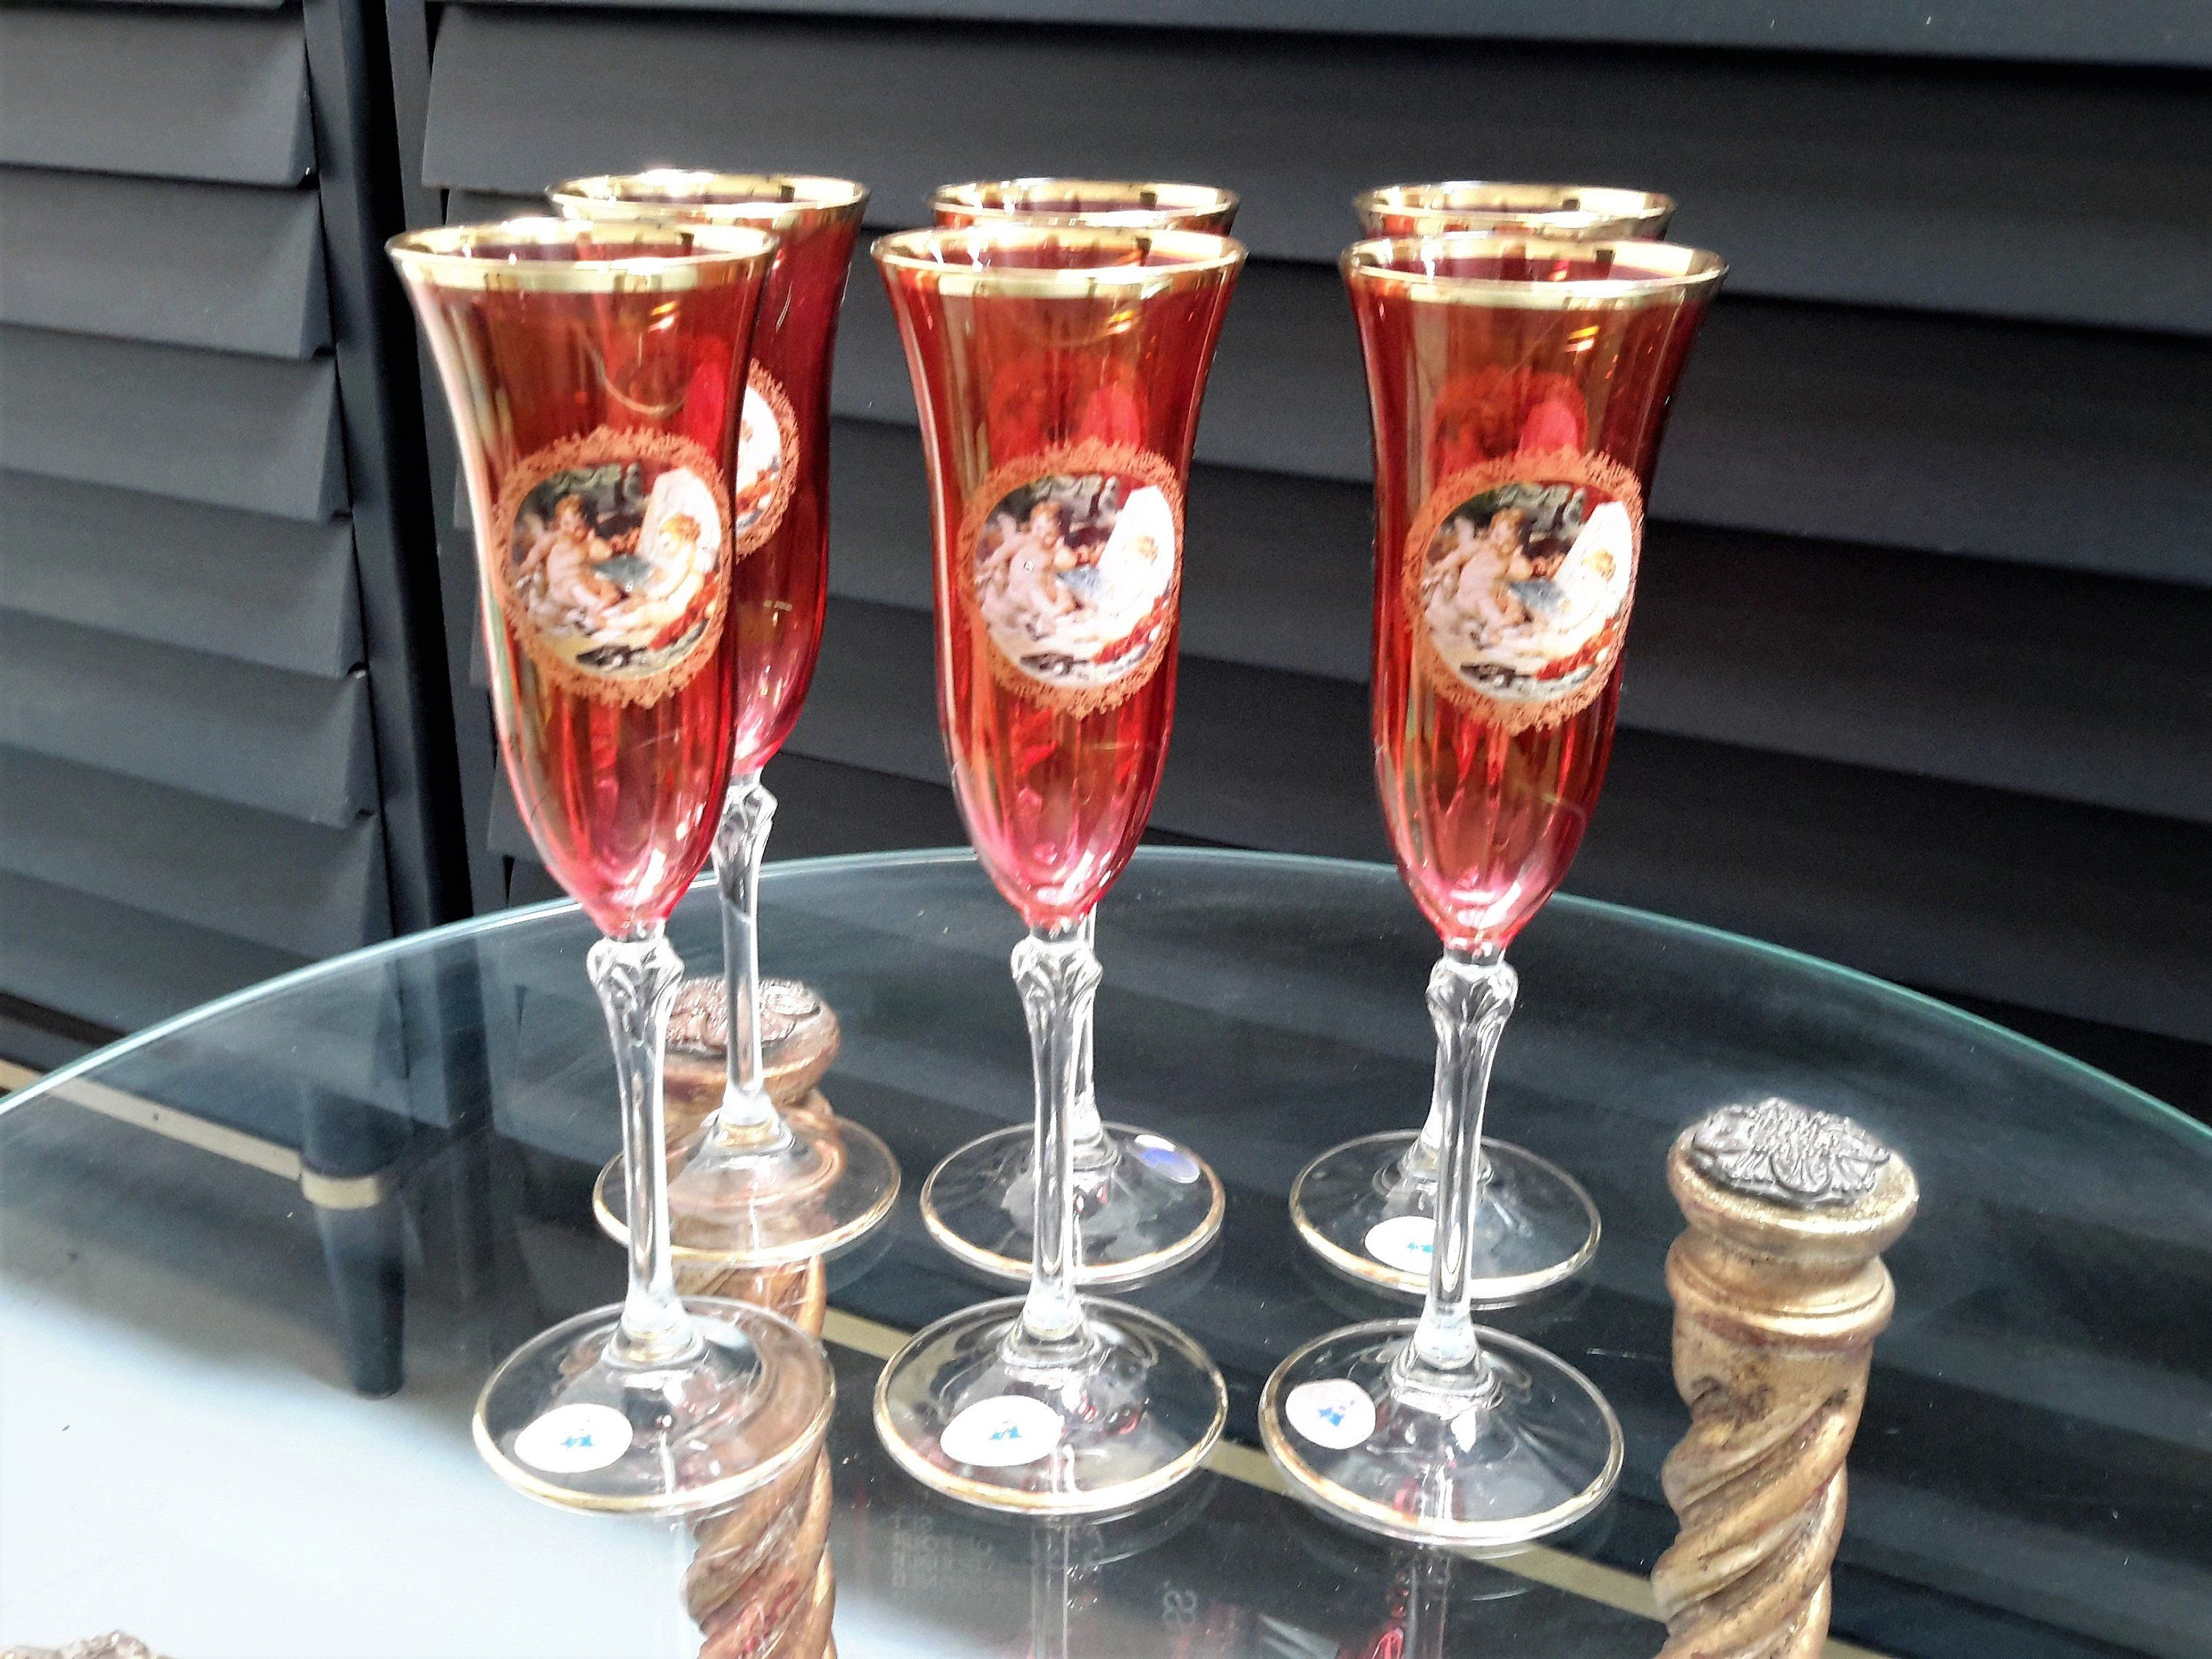 La Reine Barware Made In Italy Crystal Set Of 6 Champagne Flutes Iridescent Pink Cranberry Cherub Ange Barware Gift Crystal Champagne Flutes Luxury Barware